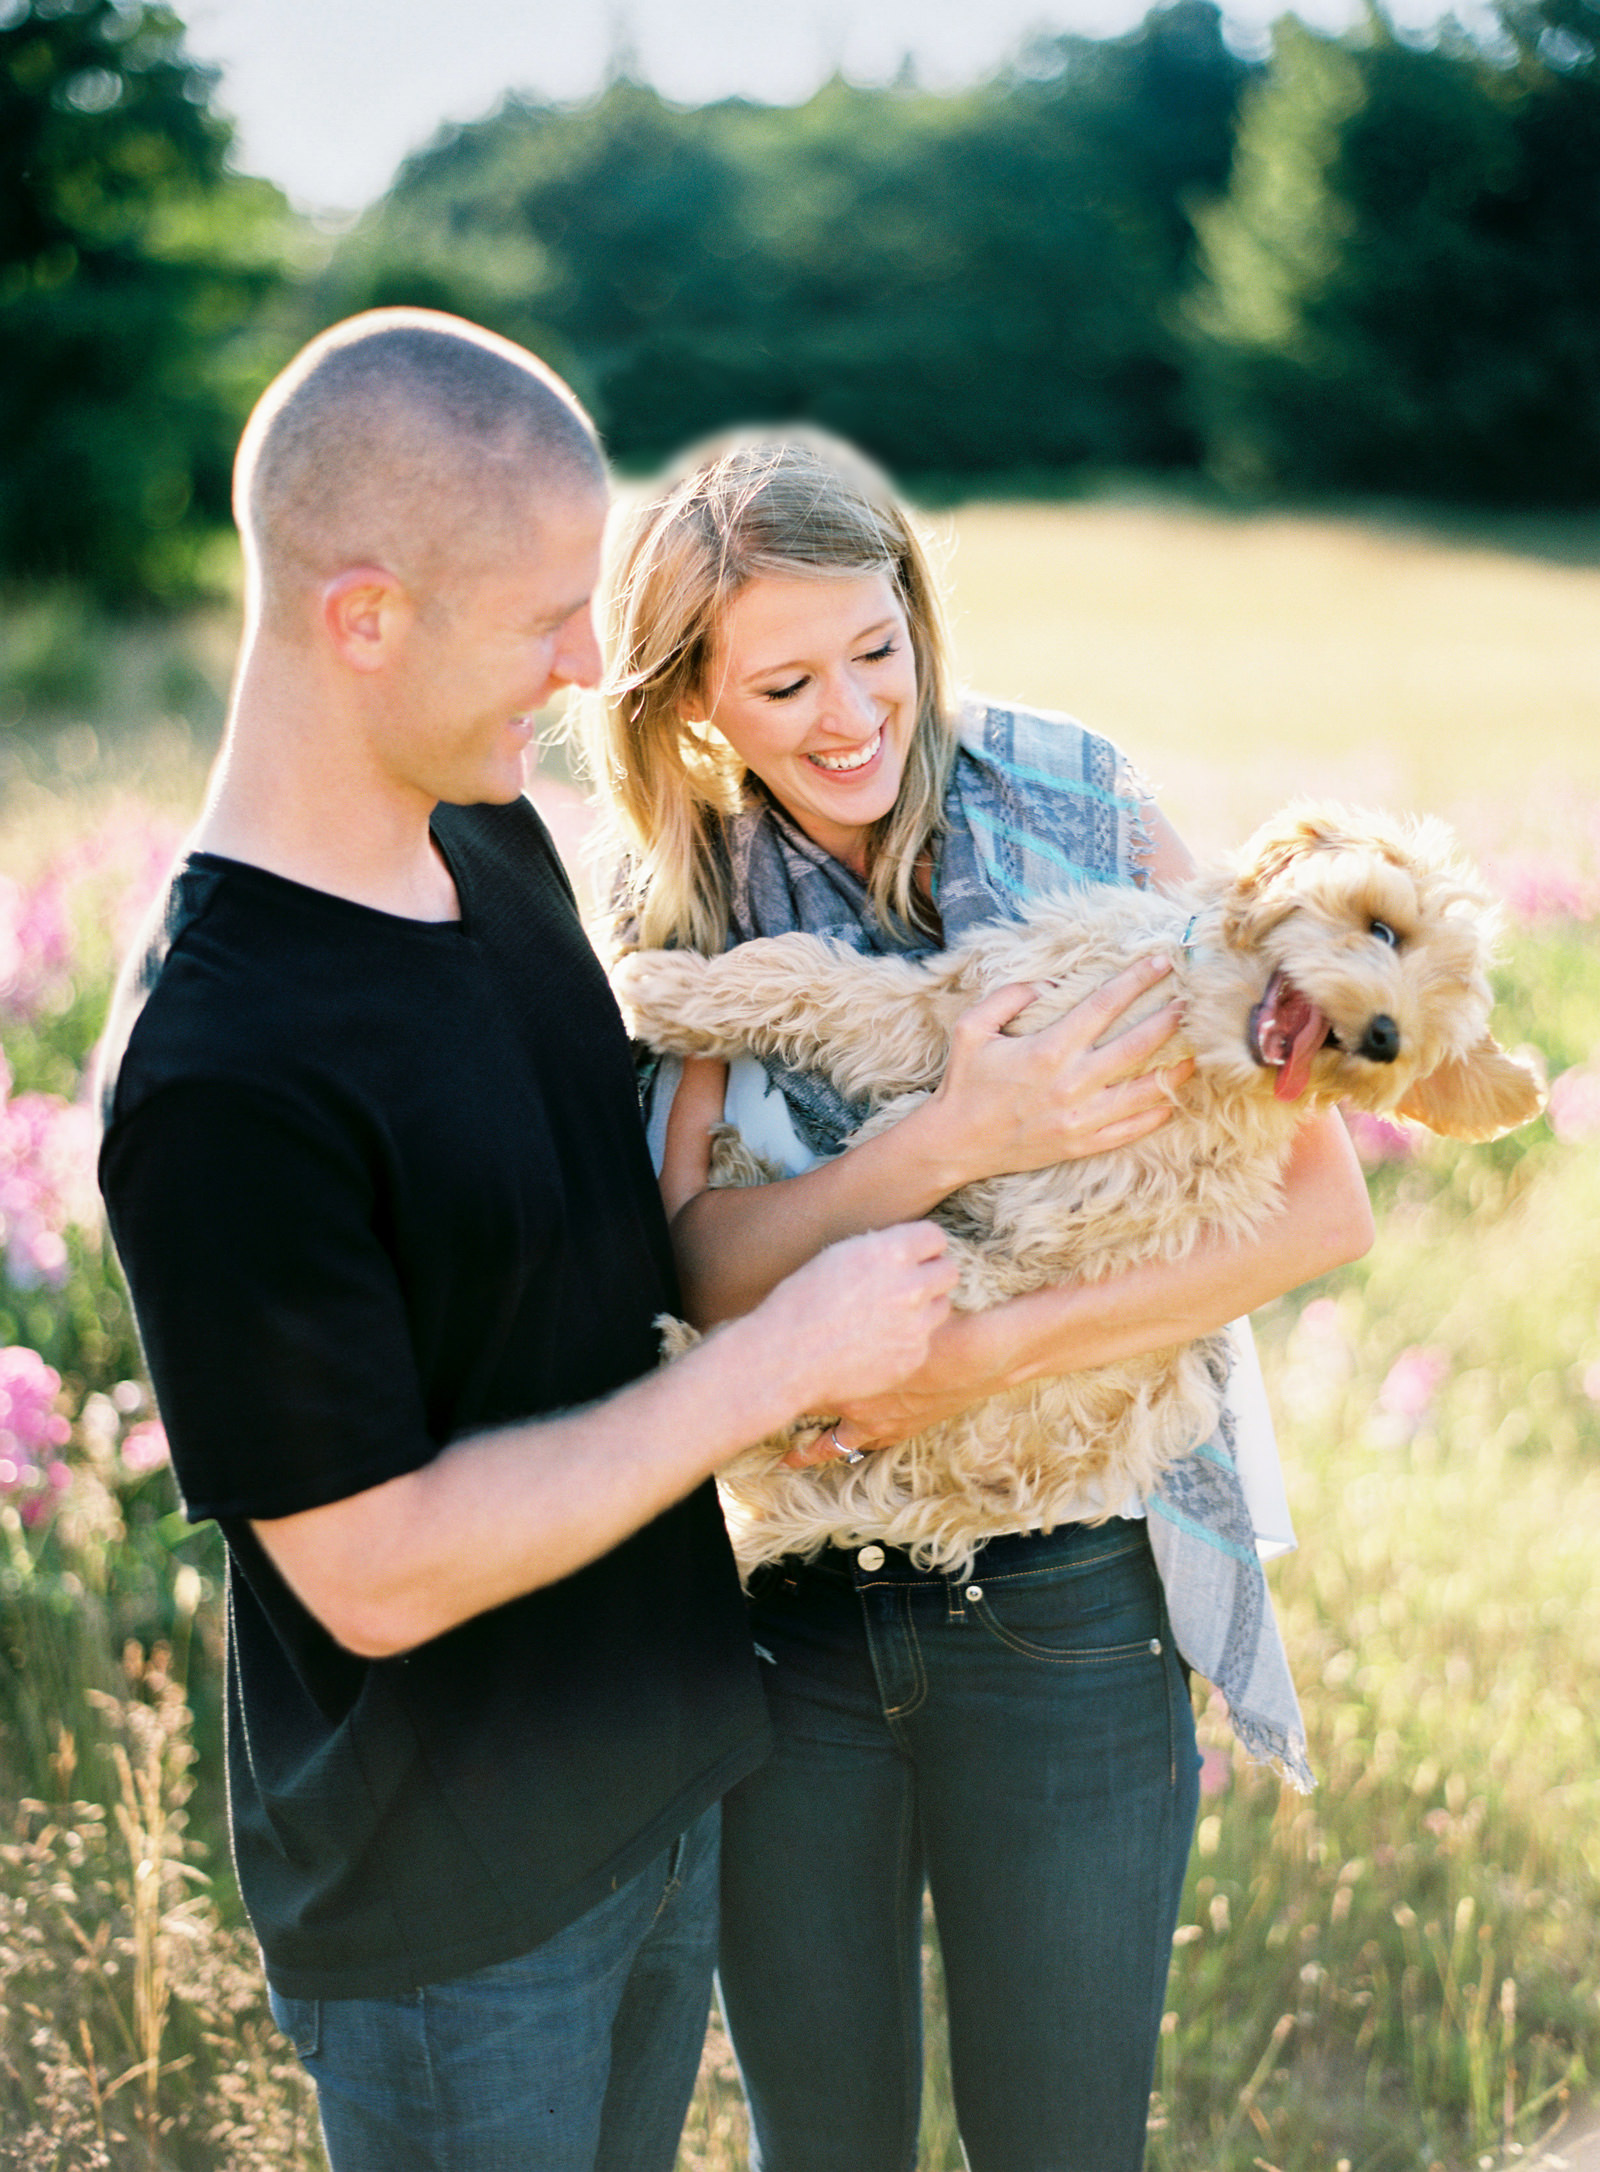 010-film-engagement-session-with-goldendoodle-puppy-by-film-photographer-ryan-flynn.jpg